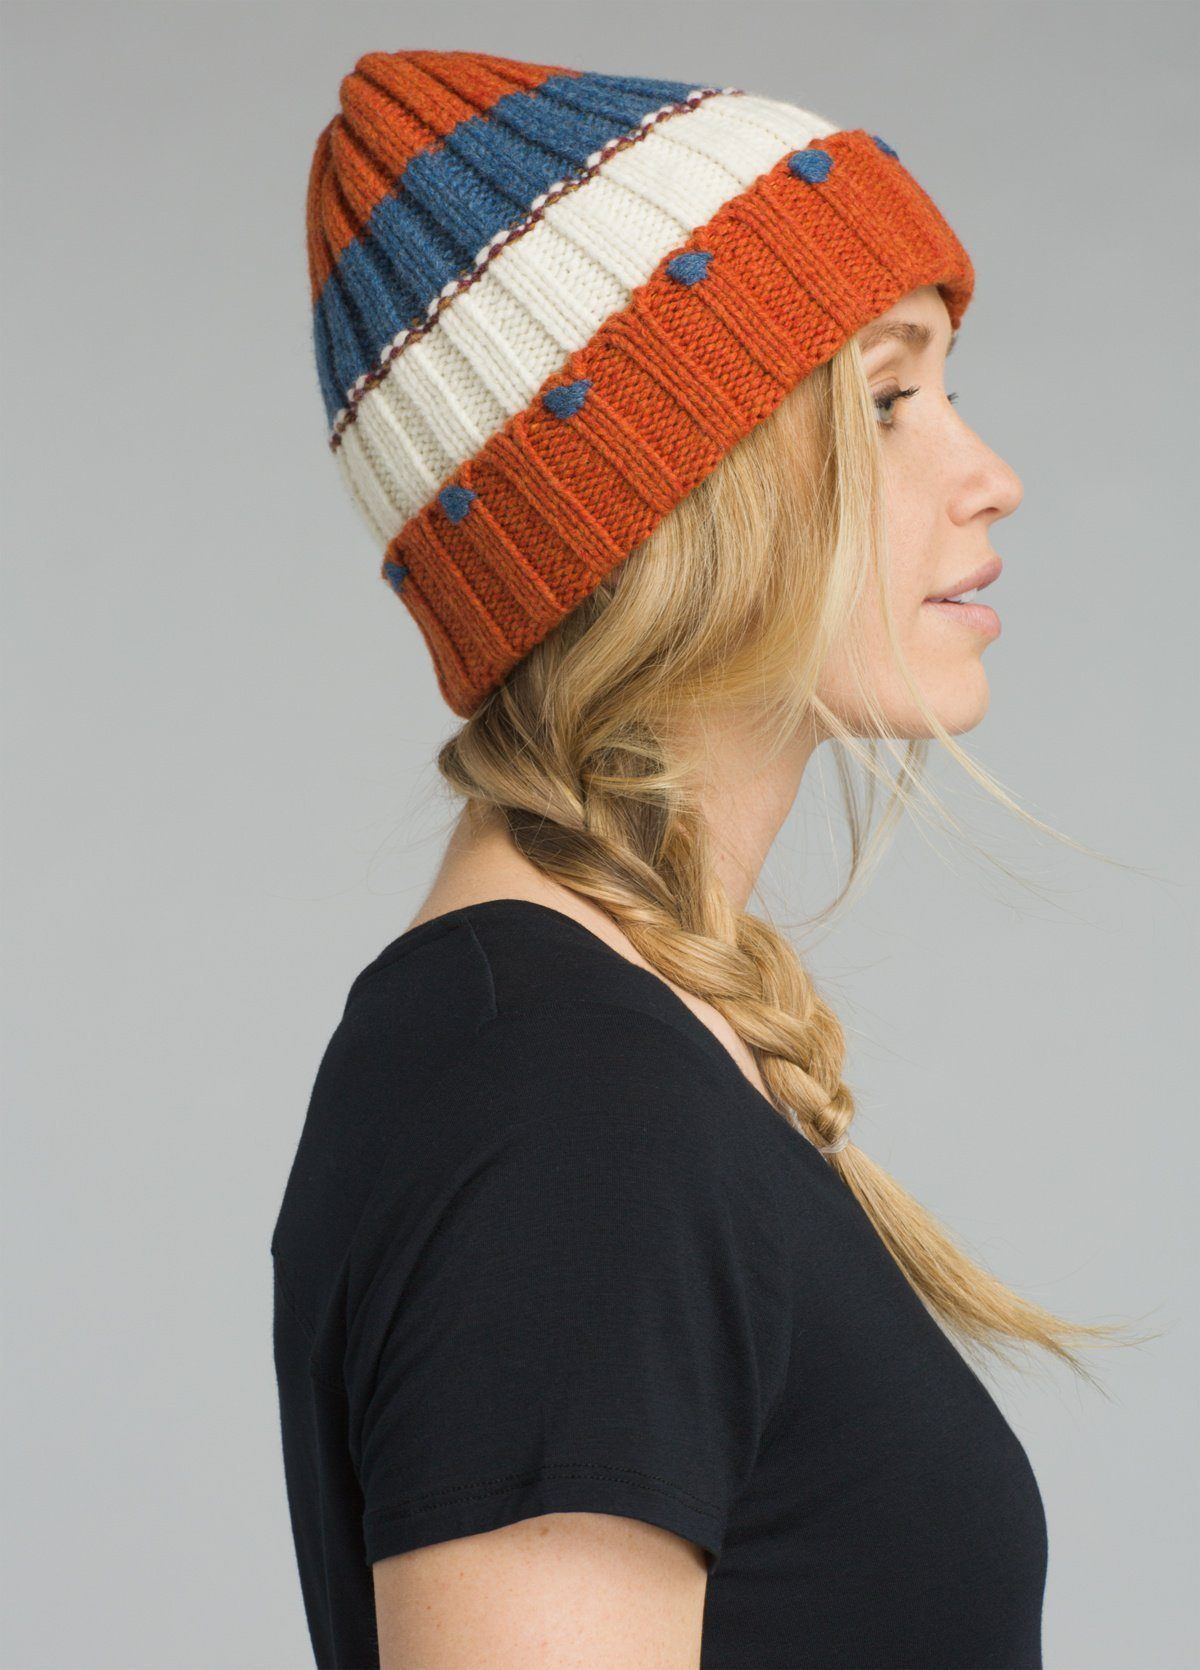 PrAna - W's Lexington Beanie -  80 % Wool - Weekendbee - sustainable sportswear